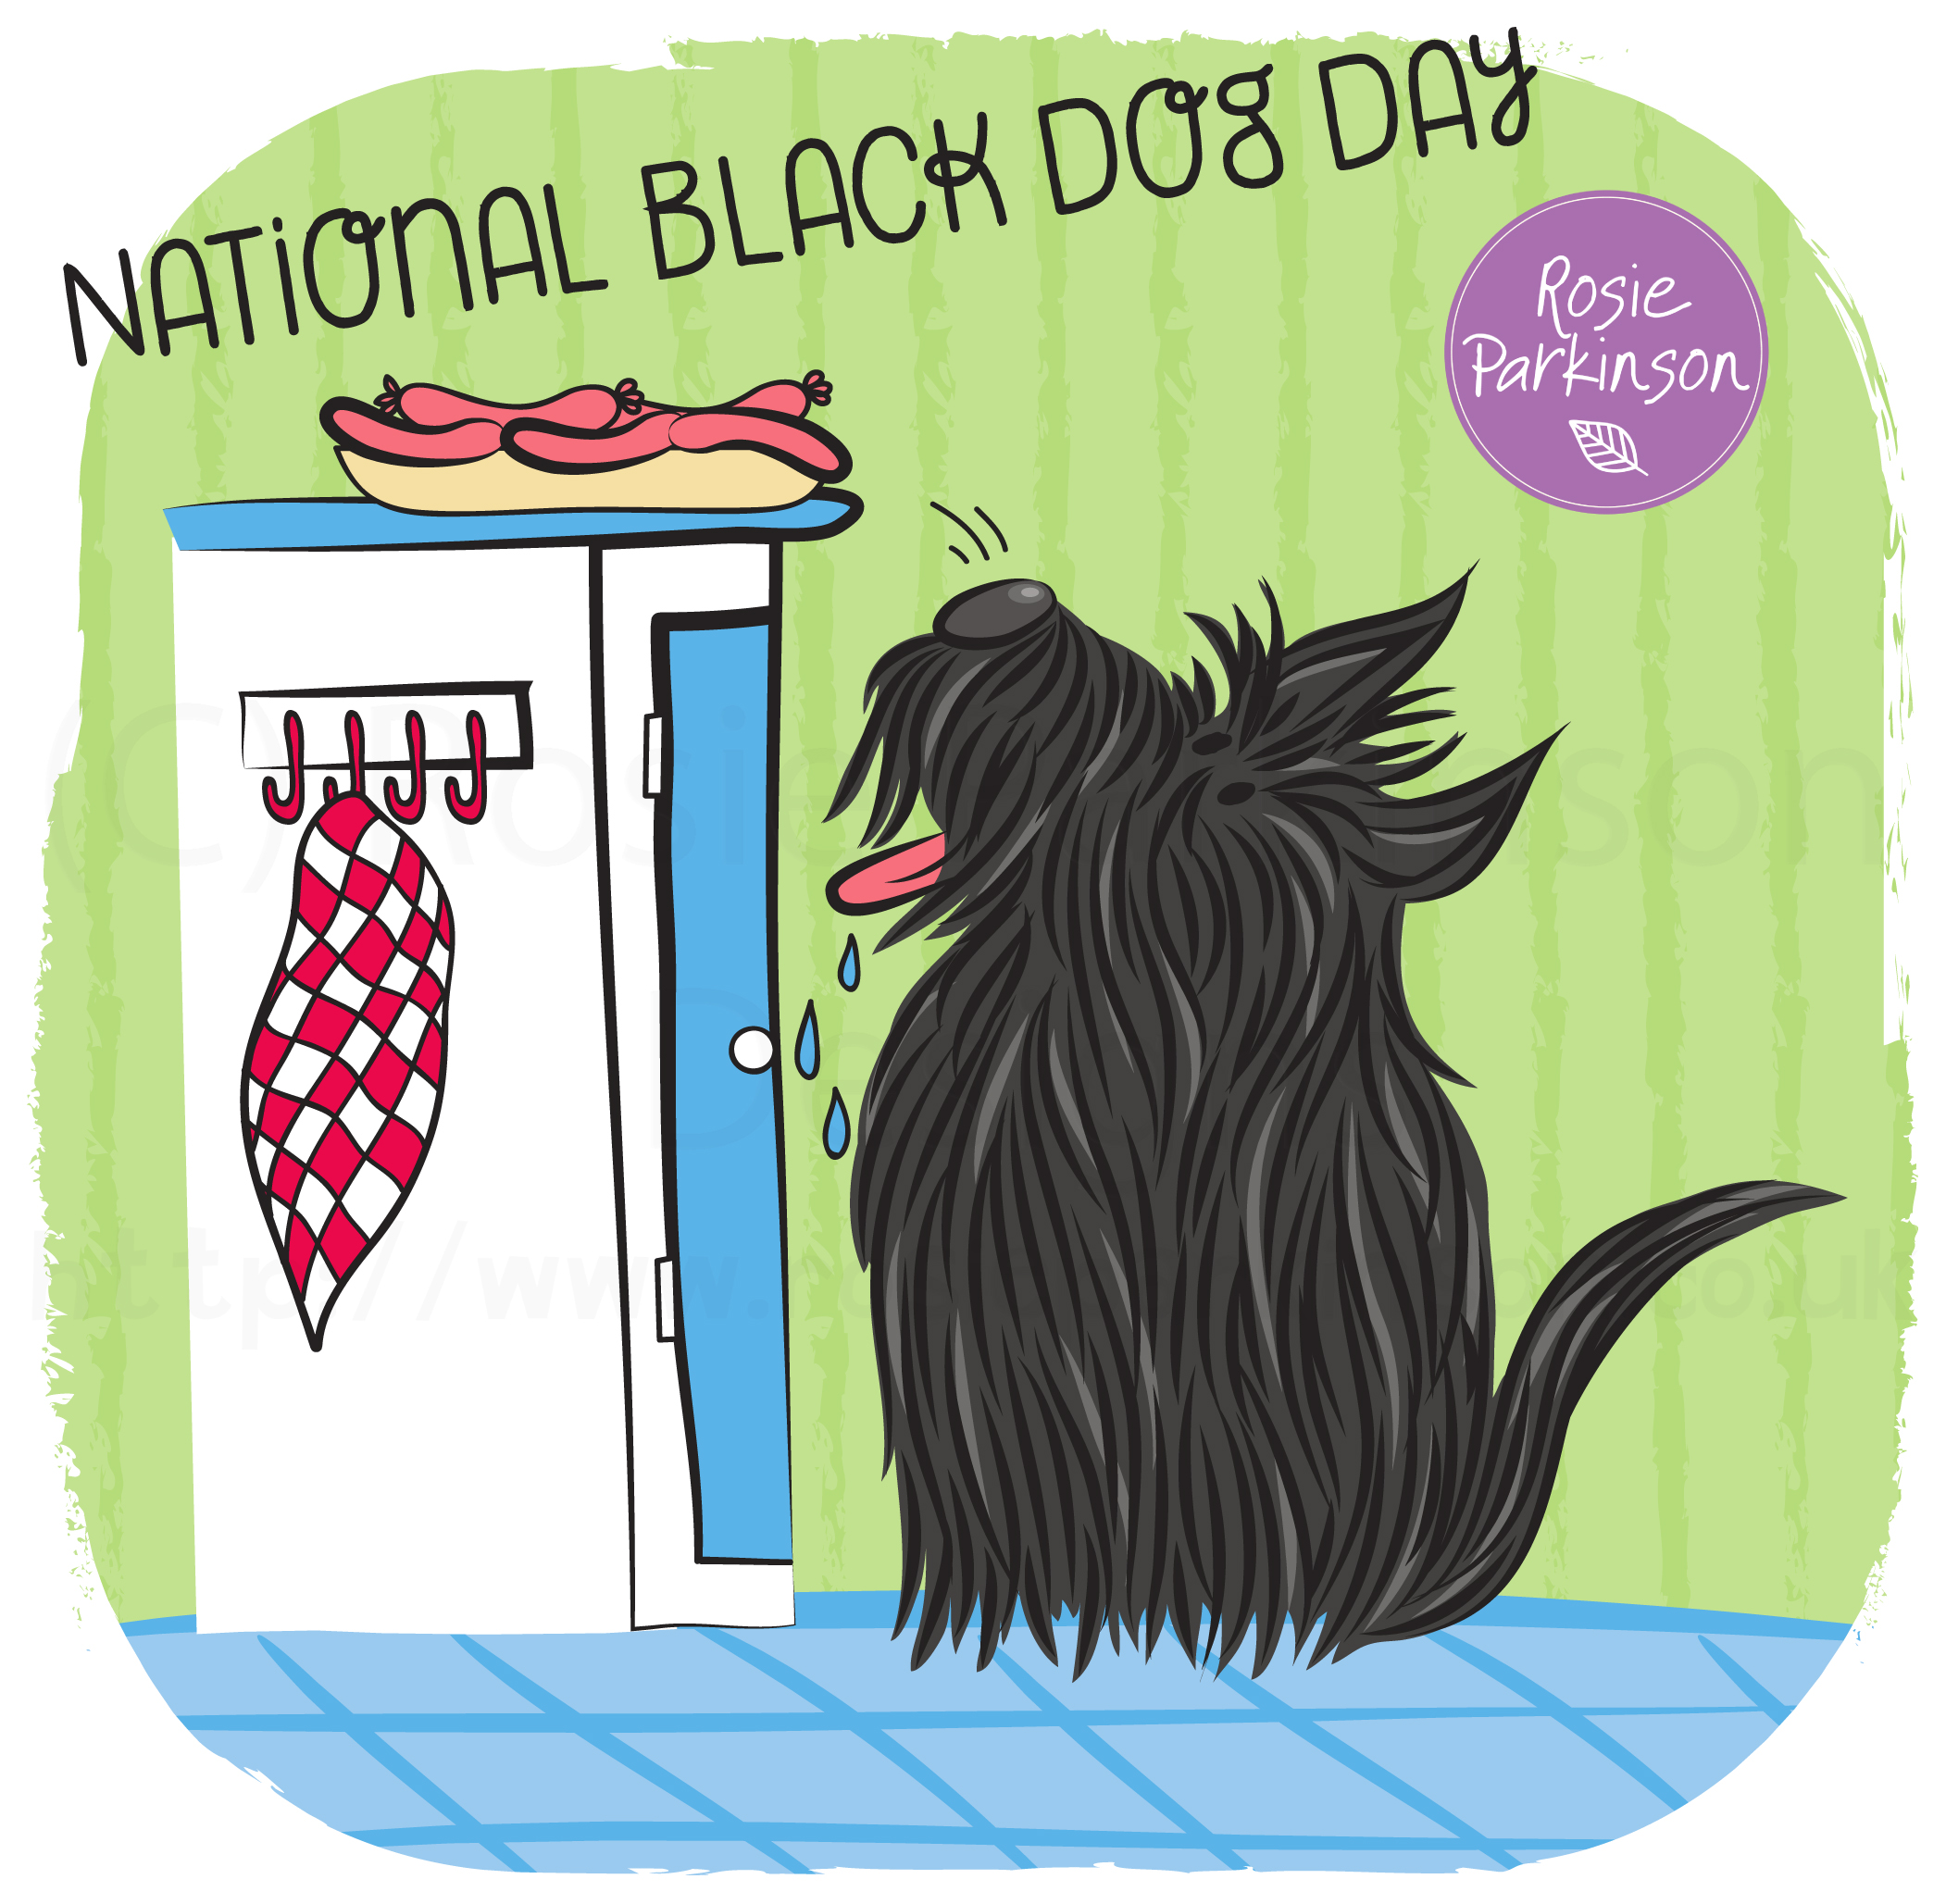 National Black Dog Day 2019